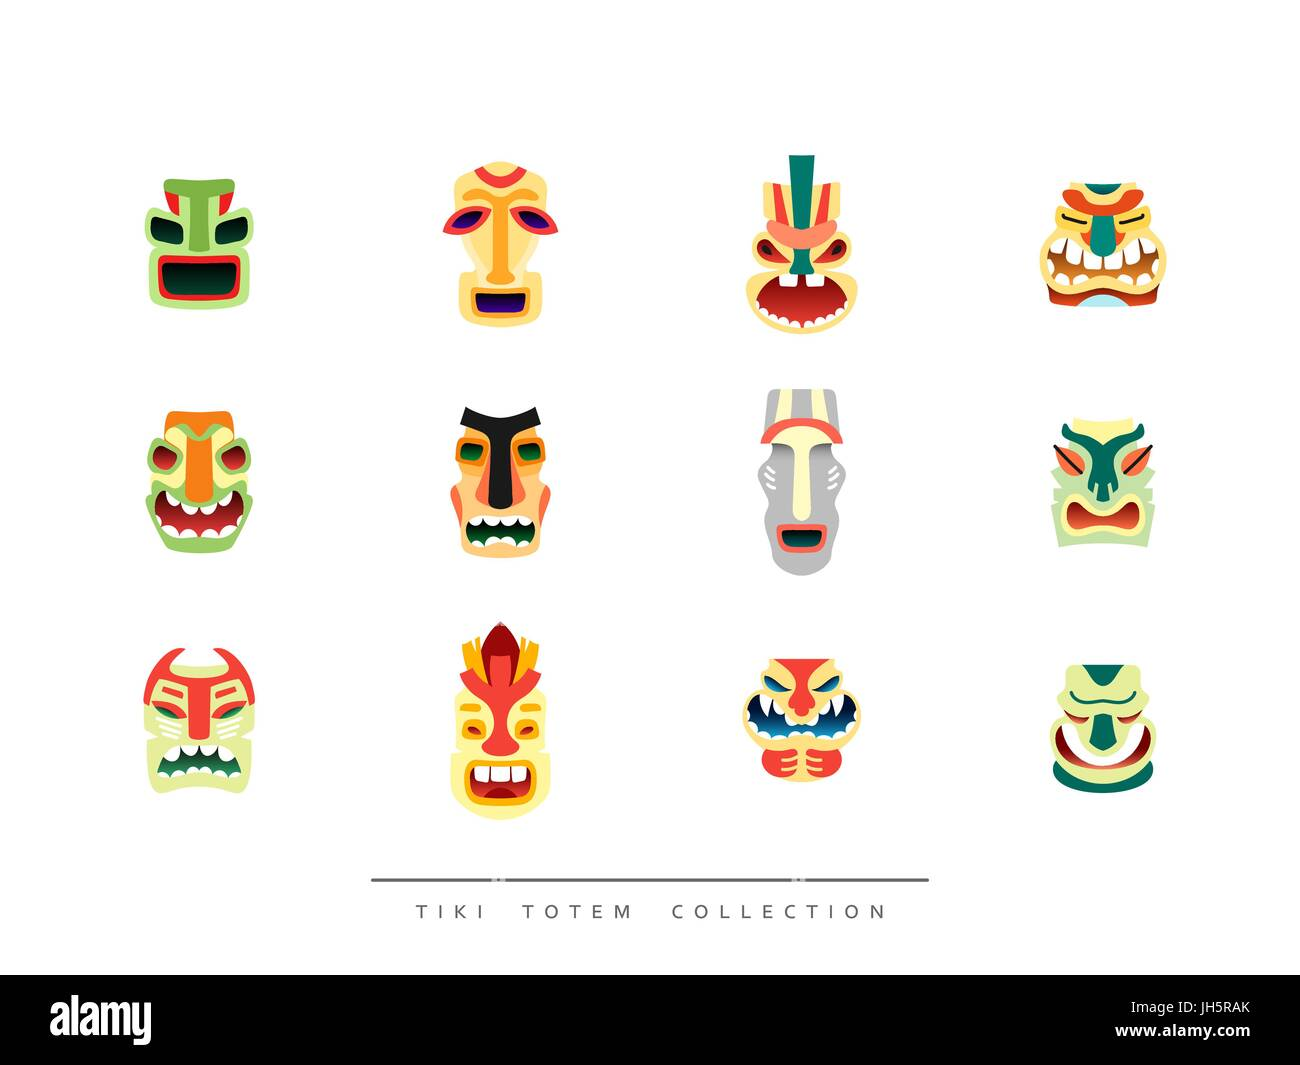 Collection Tiki Totem in flat style vector illustration - Stock Vector